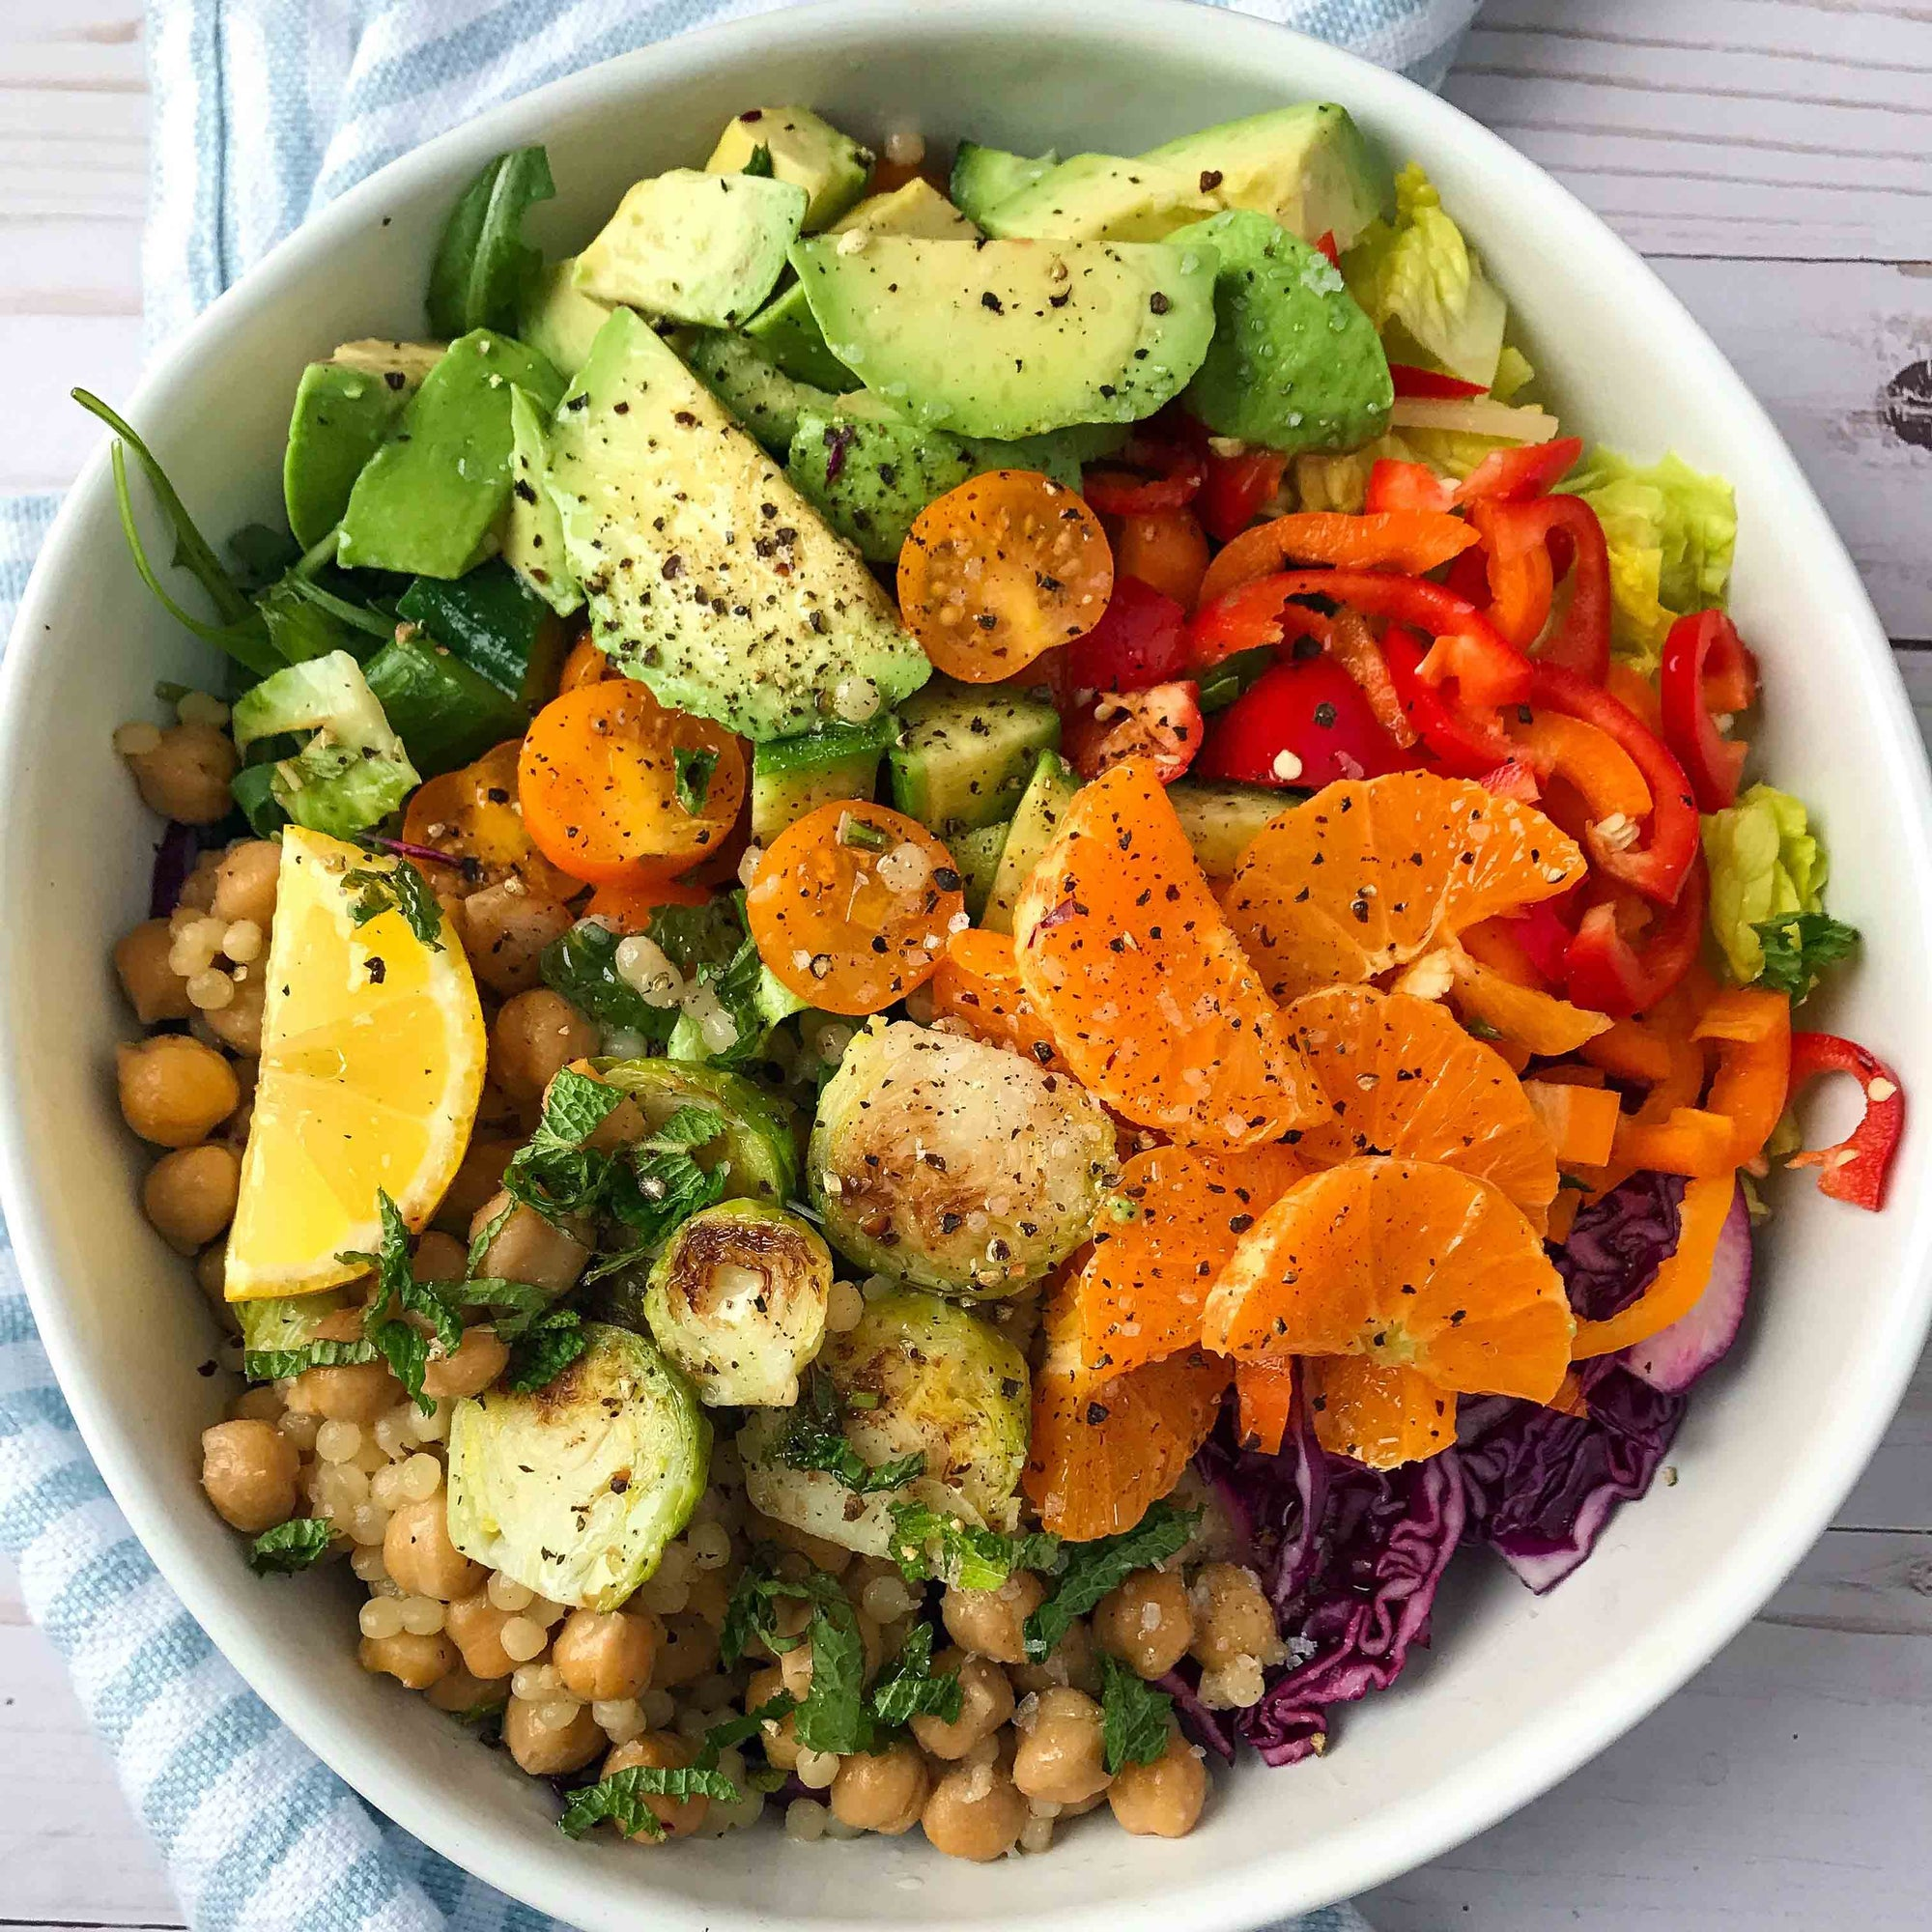 Warm Chickpea and Couscous Salad